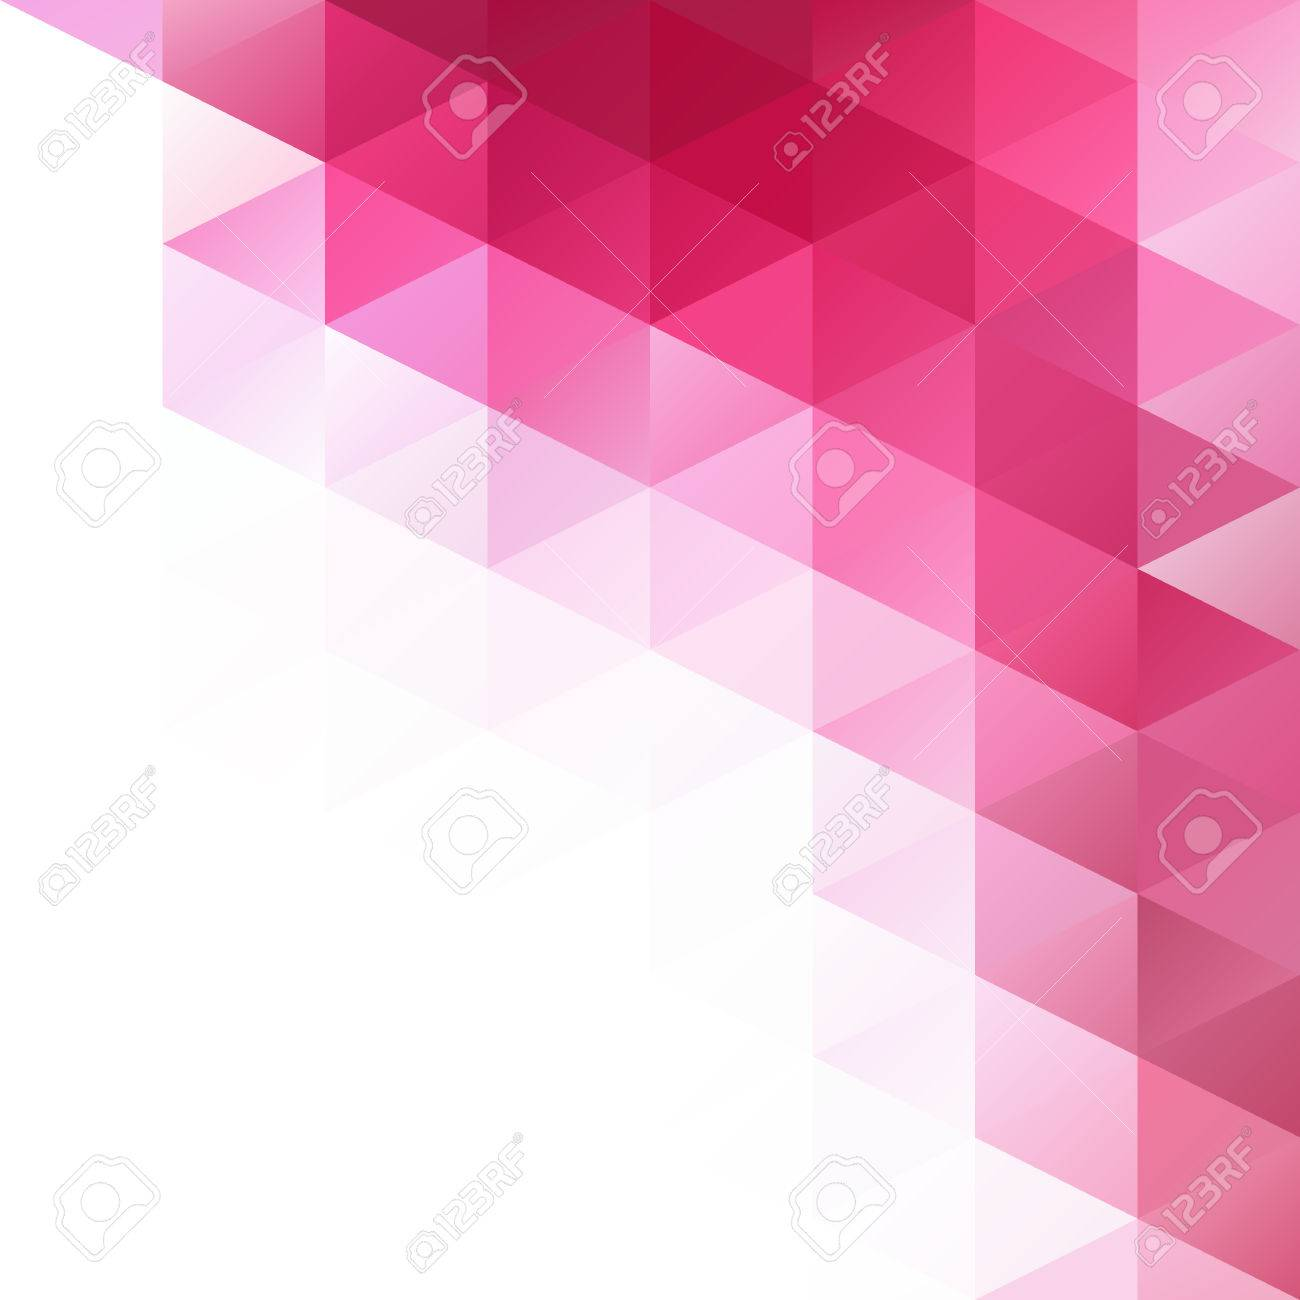 pink grid mosaic background creative design templates royalty free